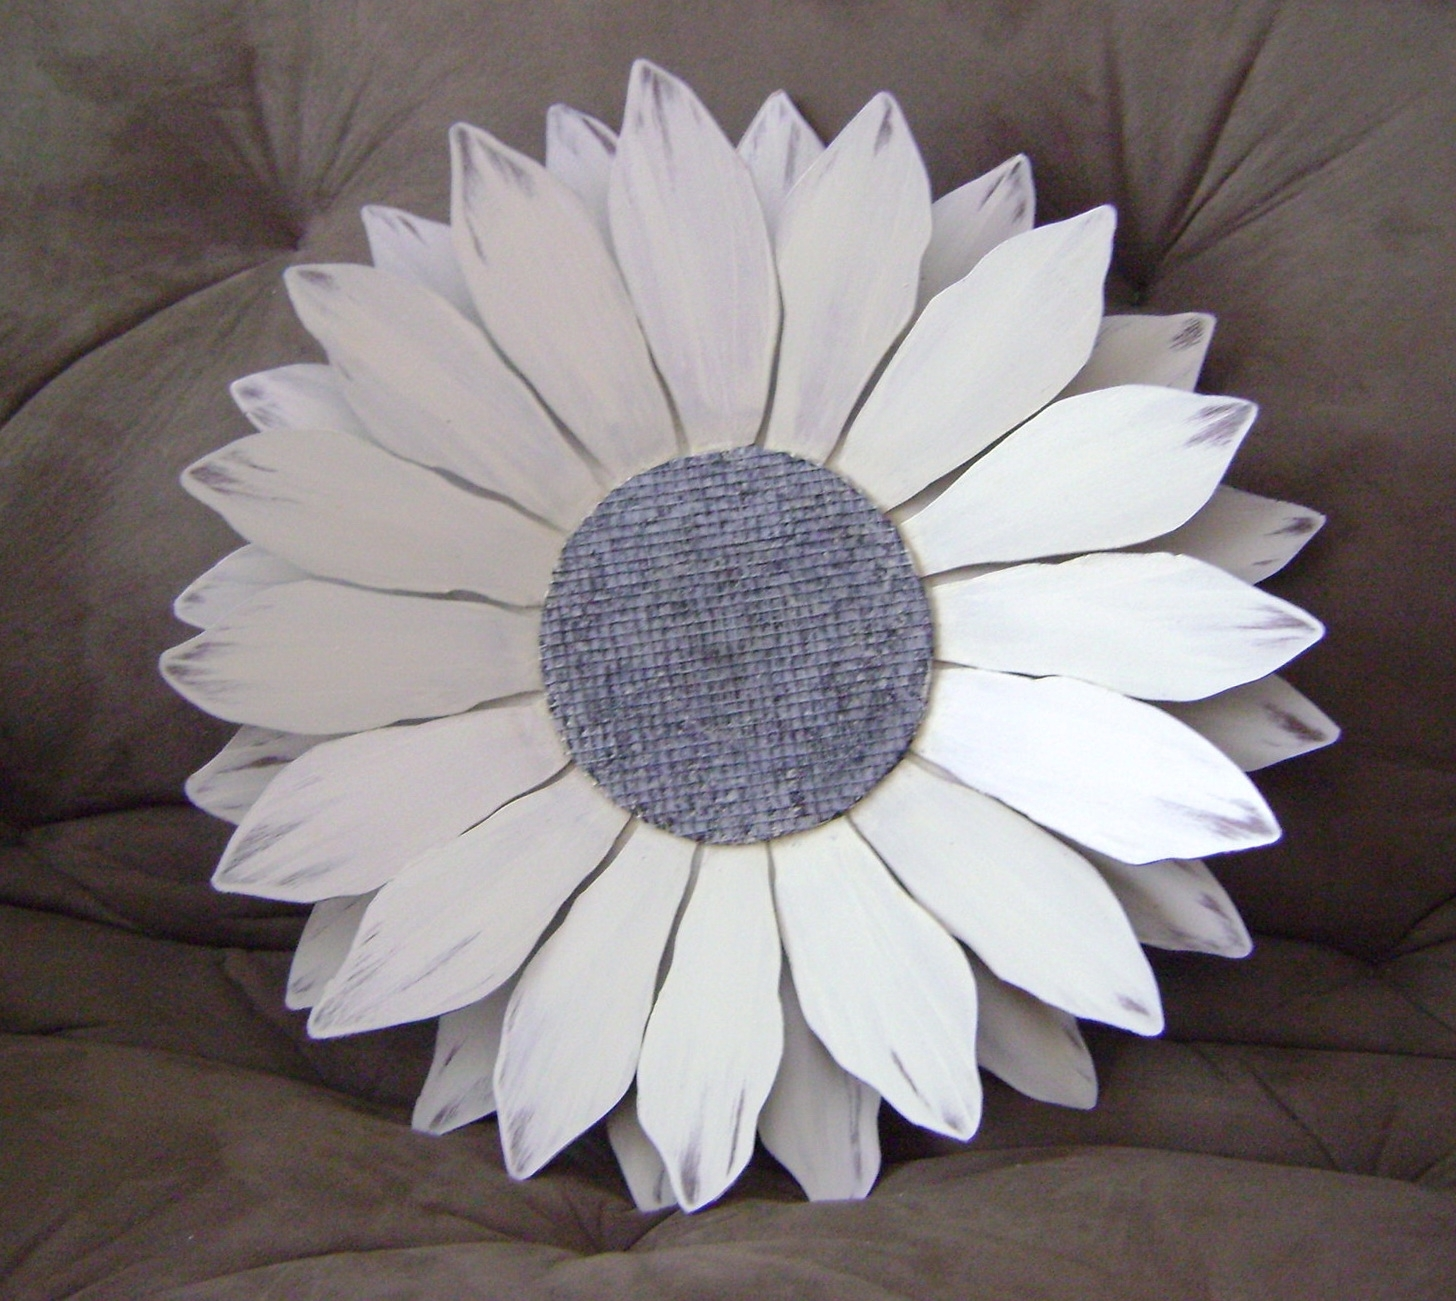 Home Design Ideas Intended For Metal Sunflower Wall Art (Gallery 12 of 15)